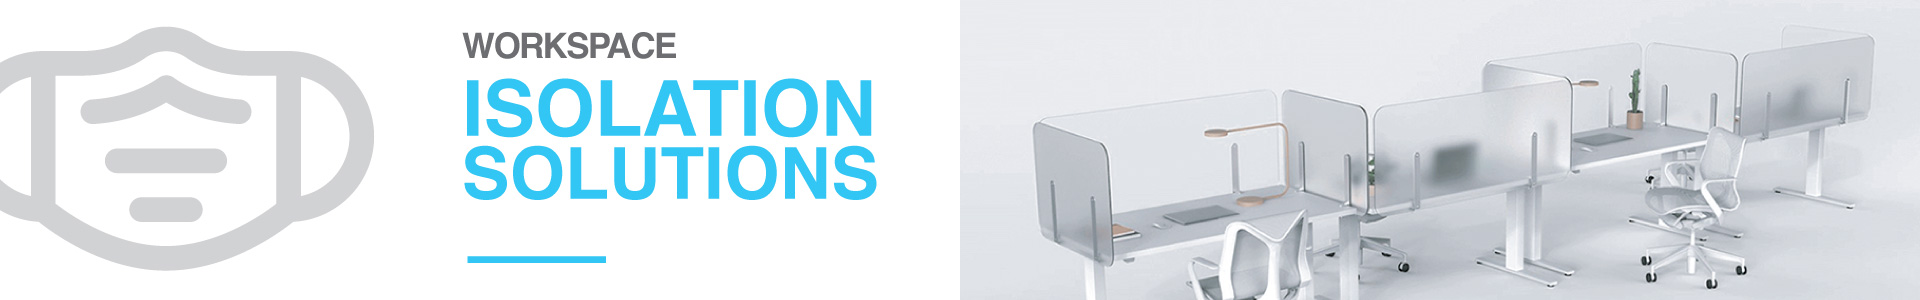 workspace isolation solutions